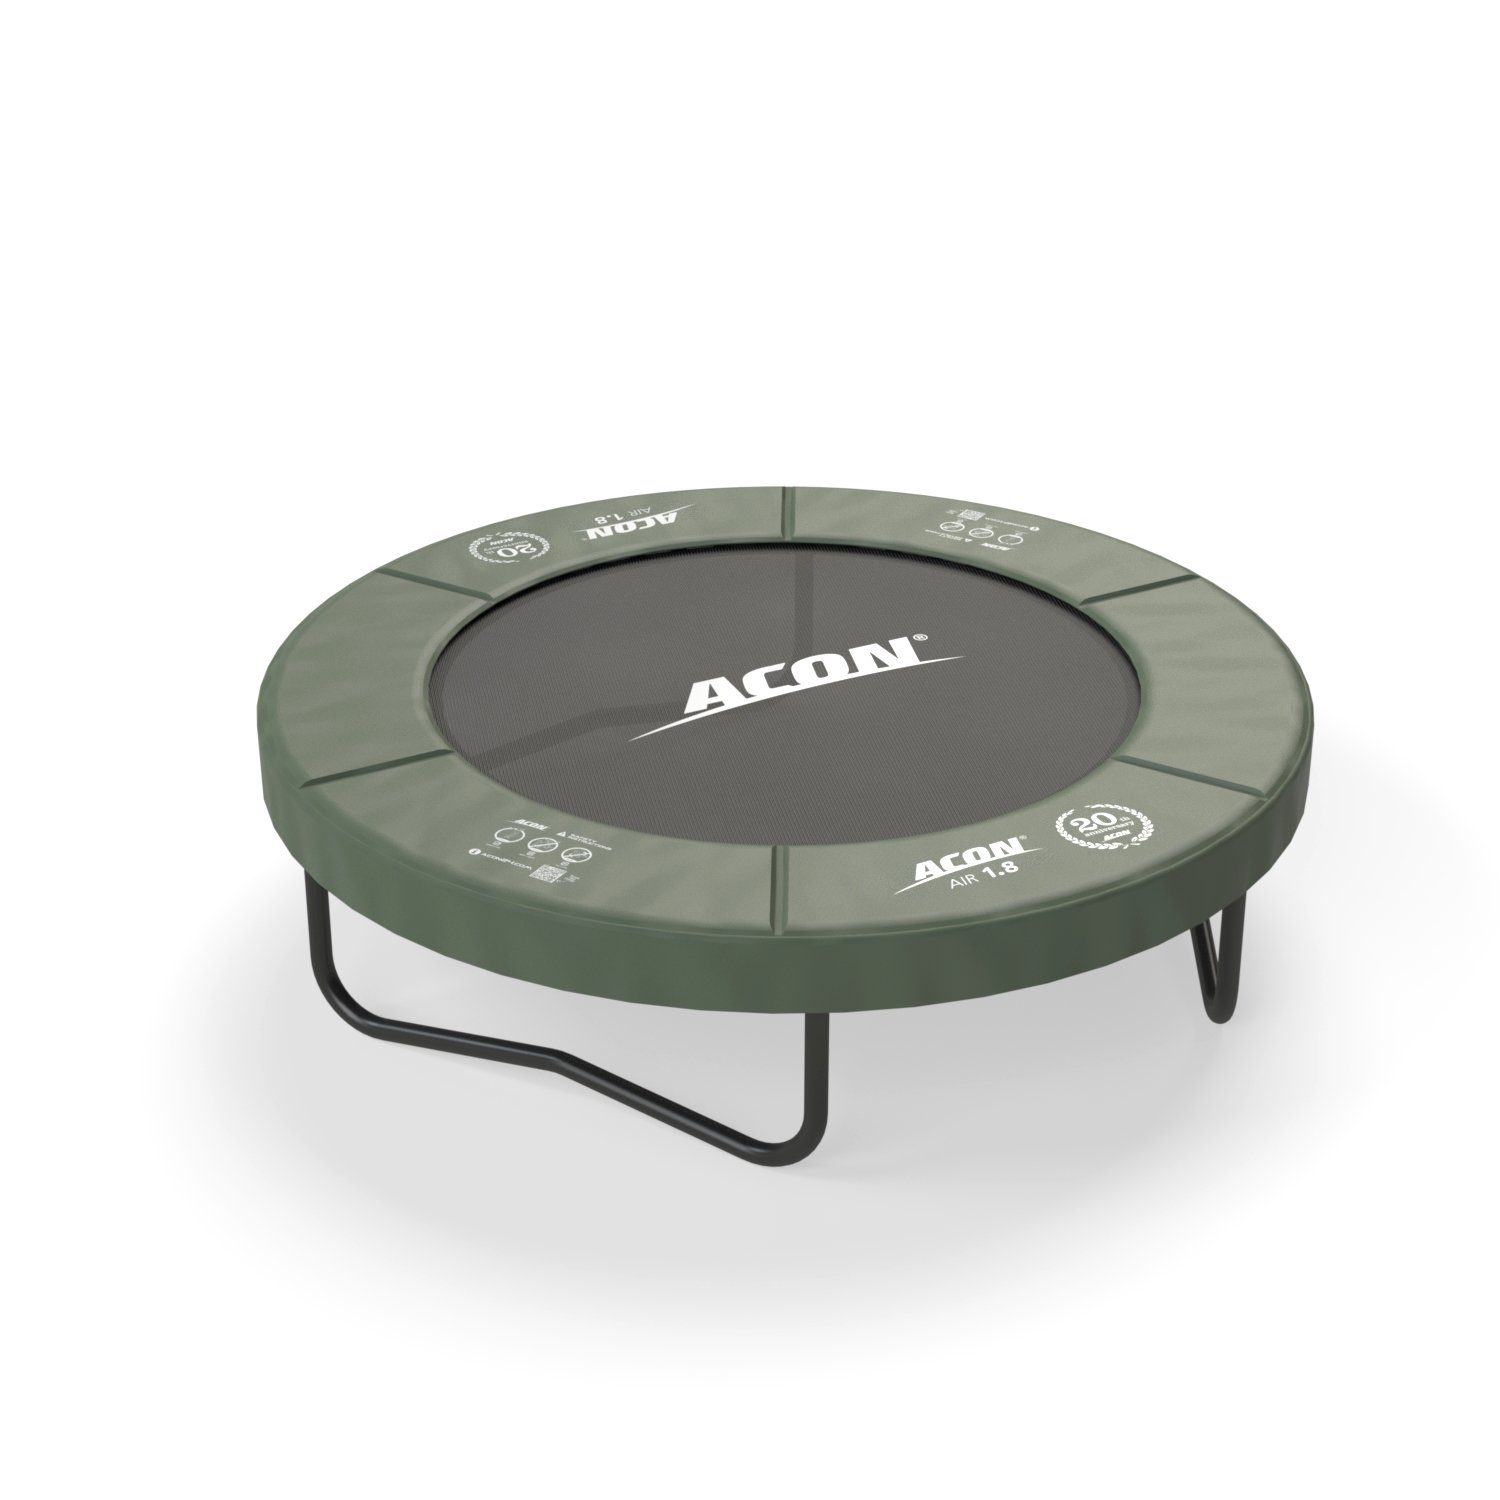 Acon Air 1.8 Fitness or Recreational Trampoline 6ft | Fun Exercise for Adults and Kids | Both Indoor and Outdoor Use, Year-Around